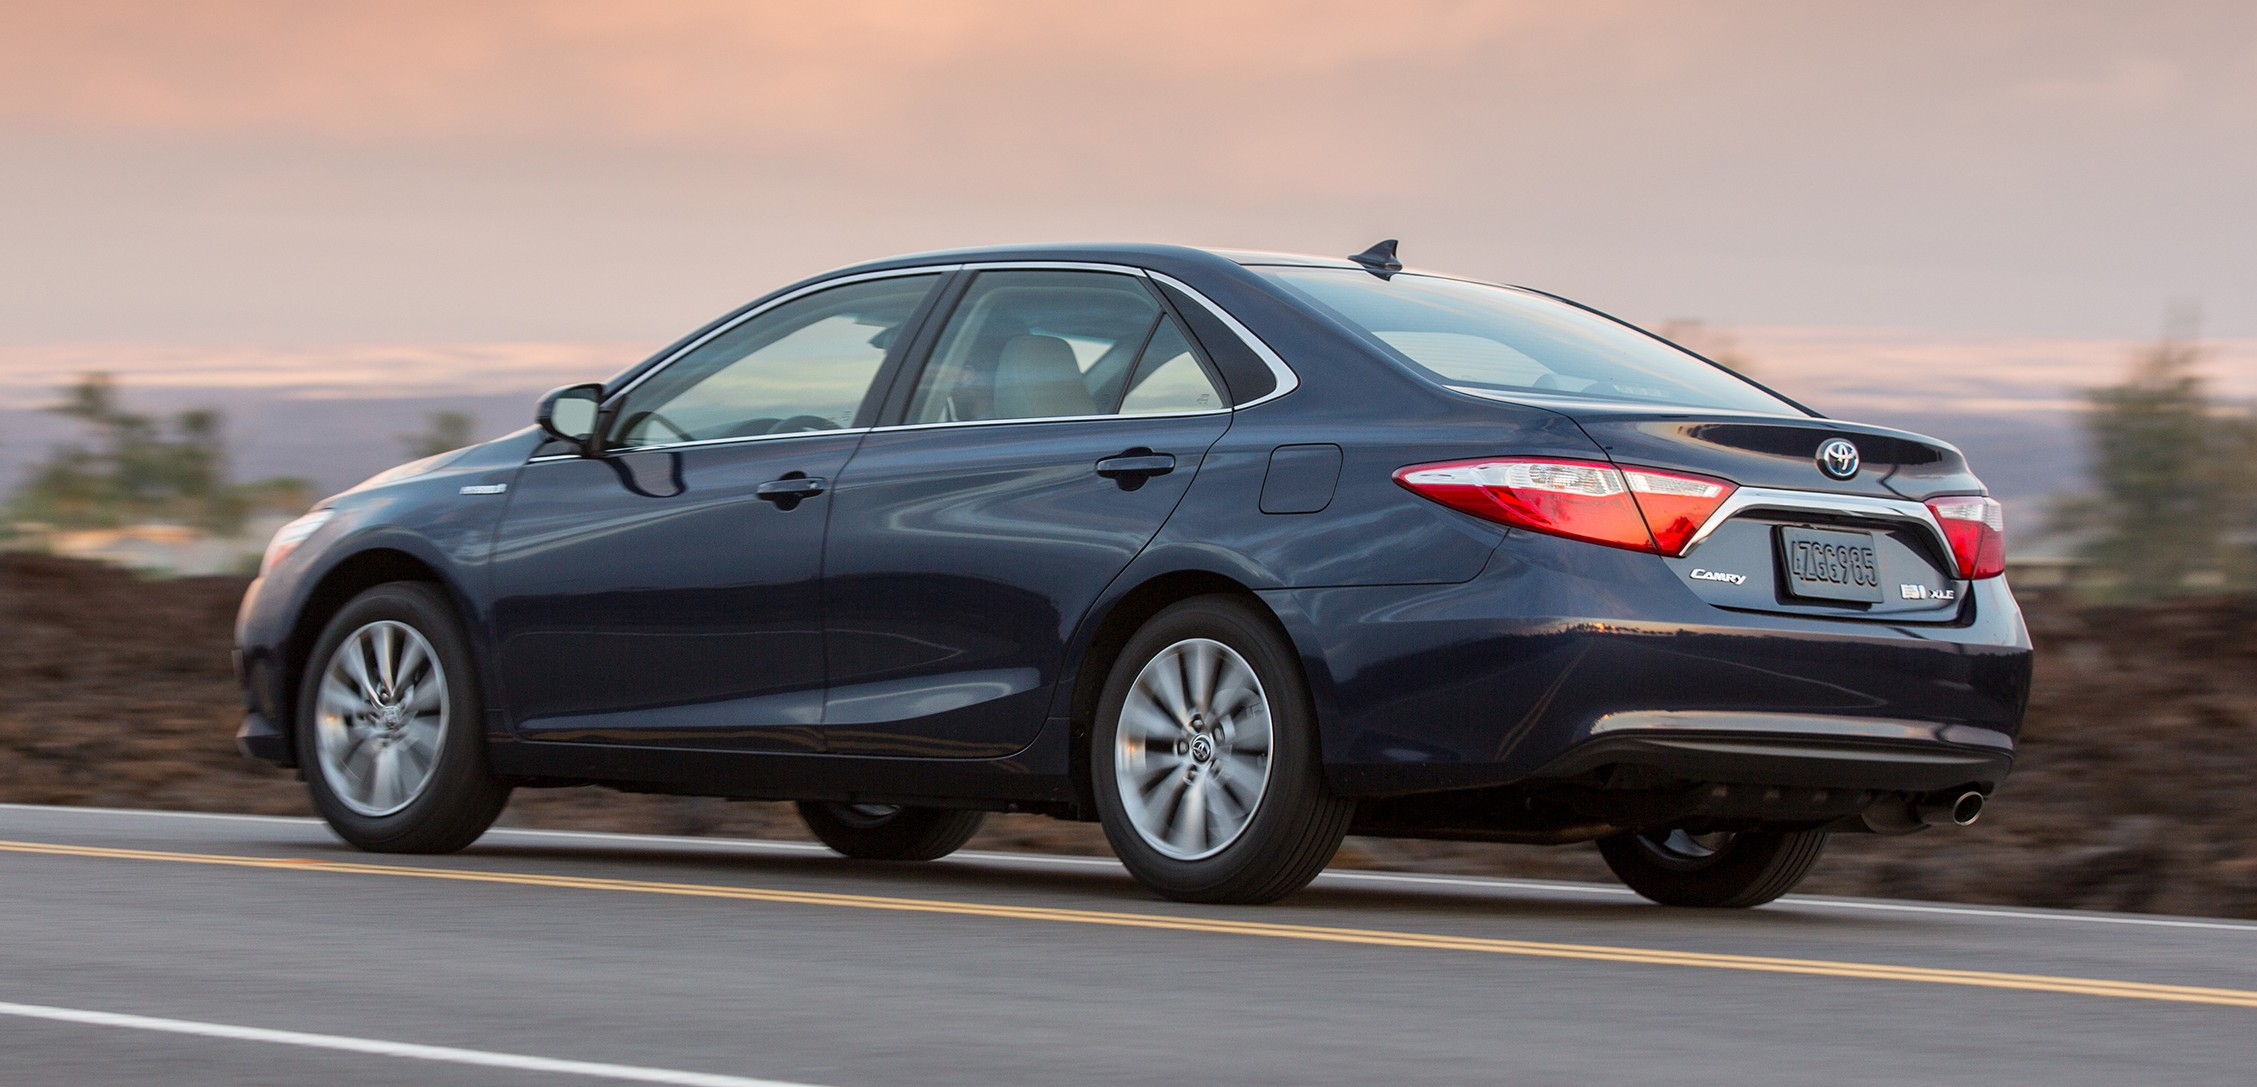 2015 toyota camry major facelift unveiled in nyc image